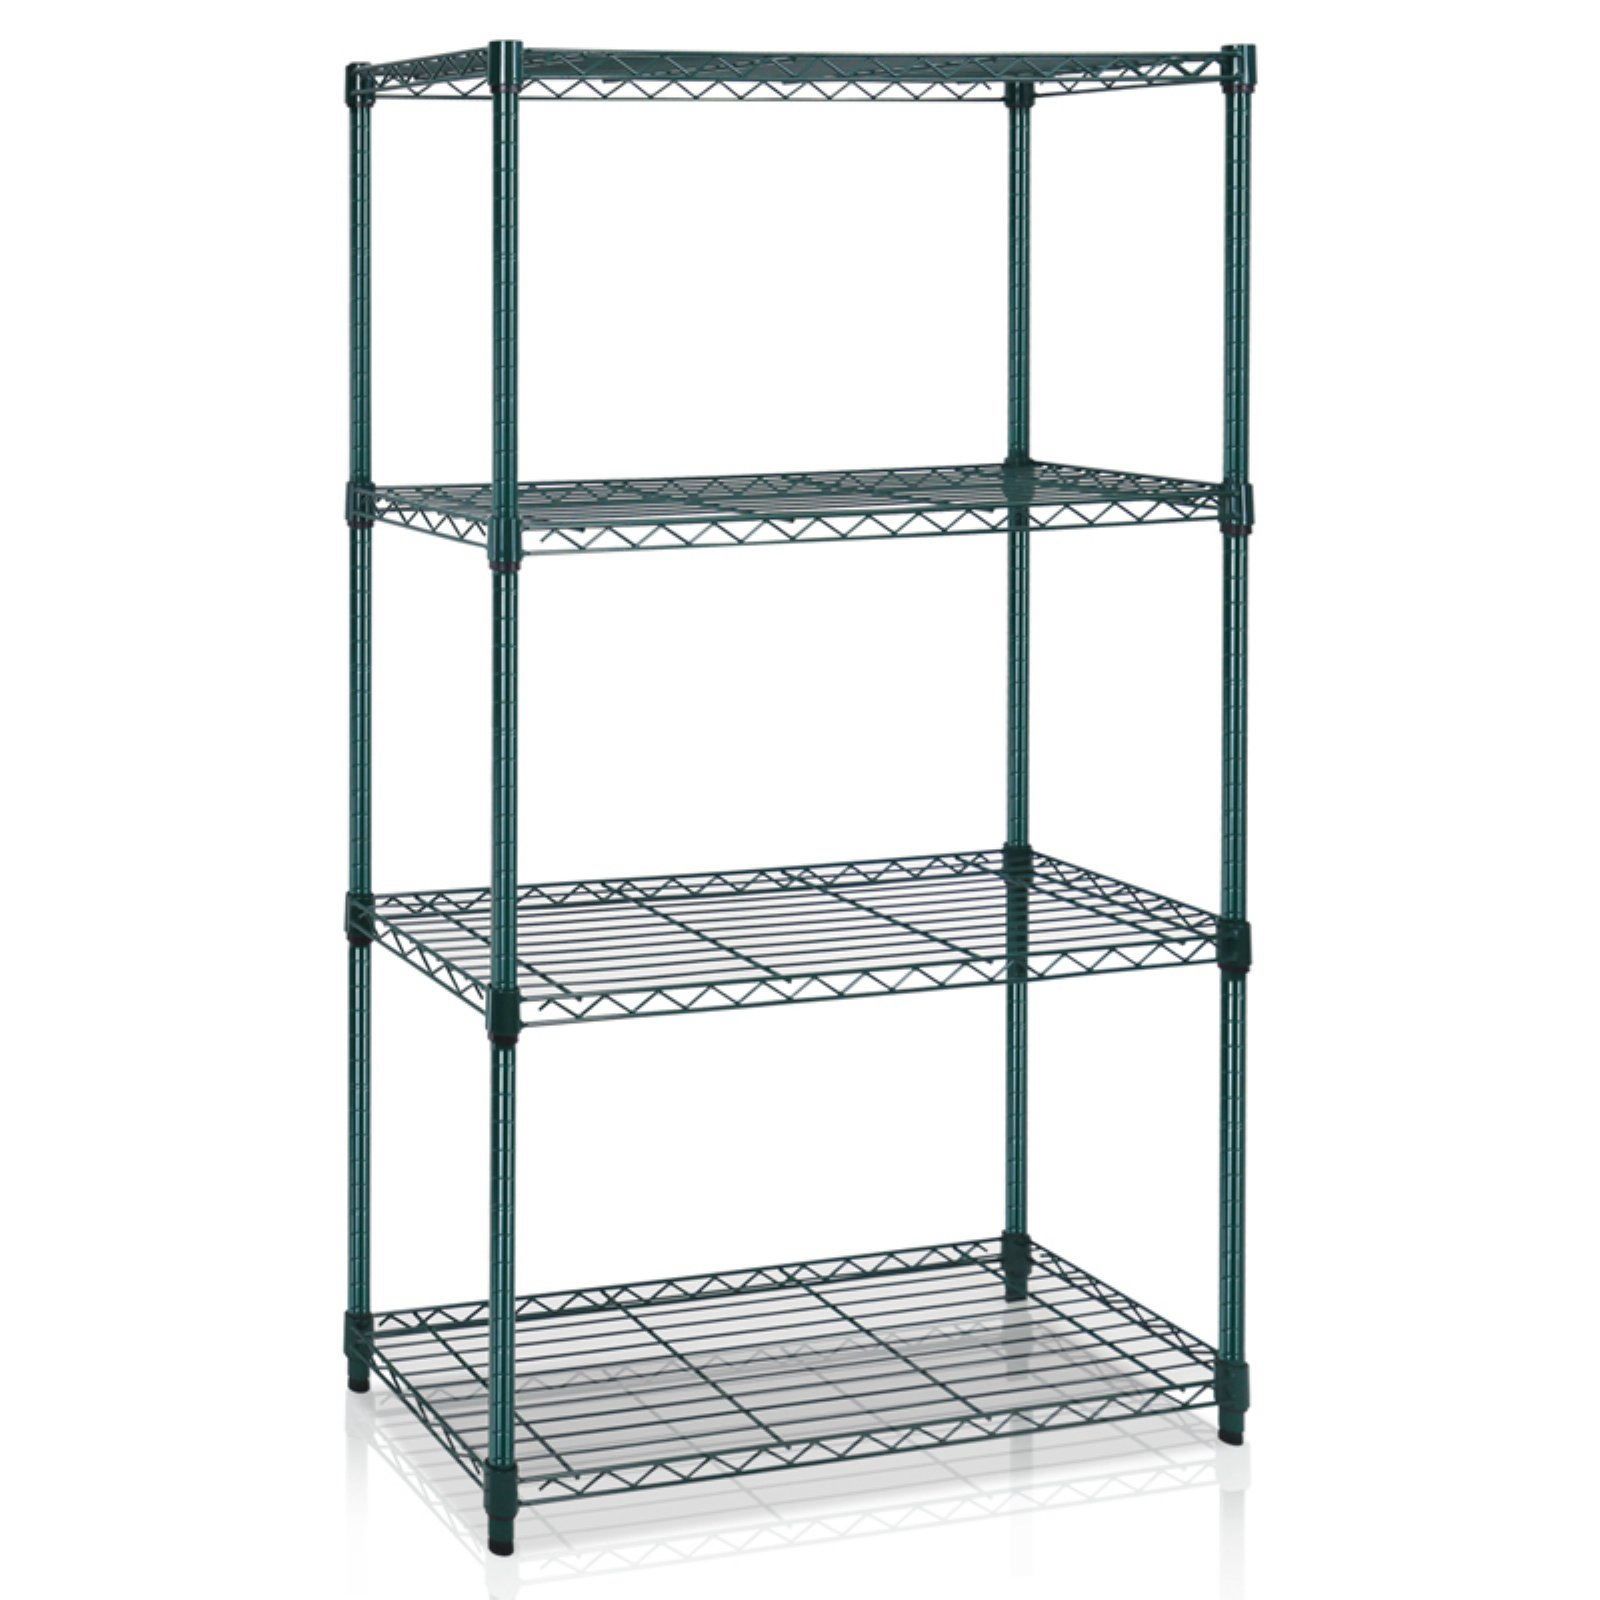 Furinno Wayar 4-Tier Heavy-Duty Wire Shelving Chrome, Multiple Colors